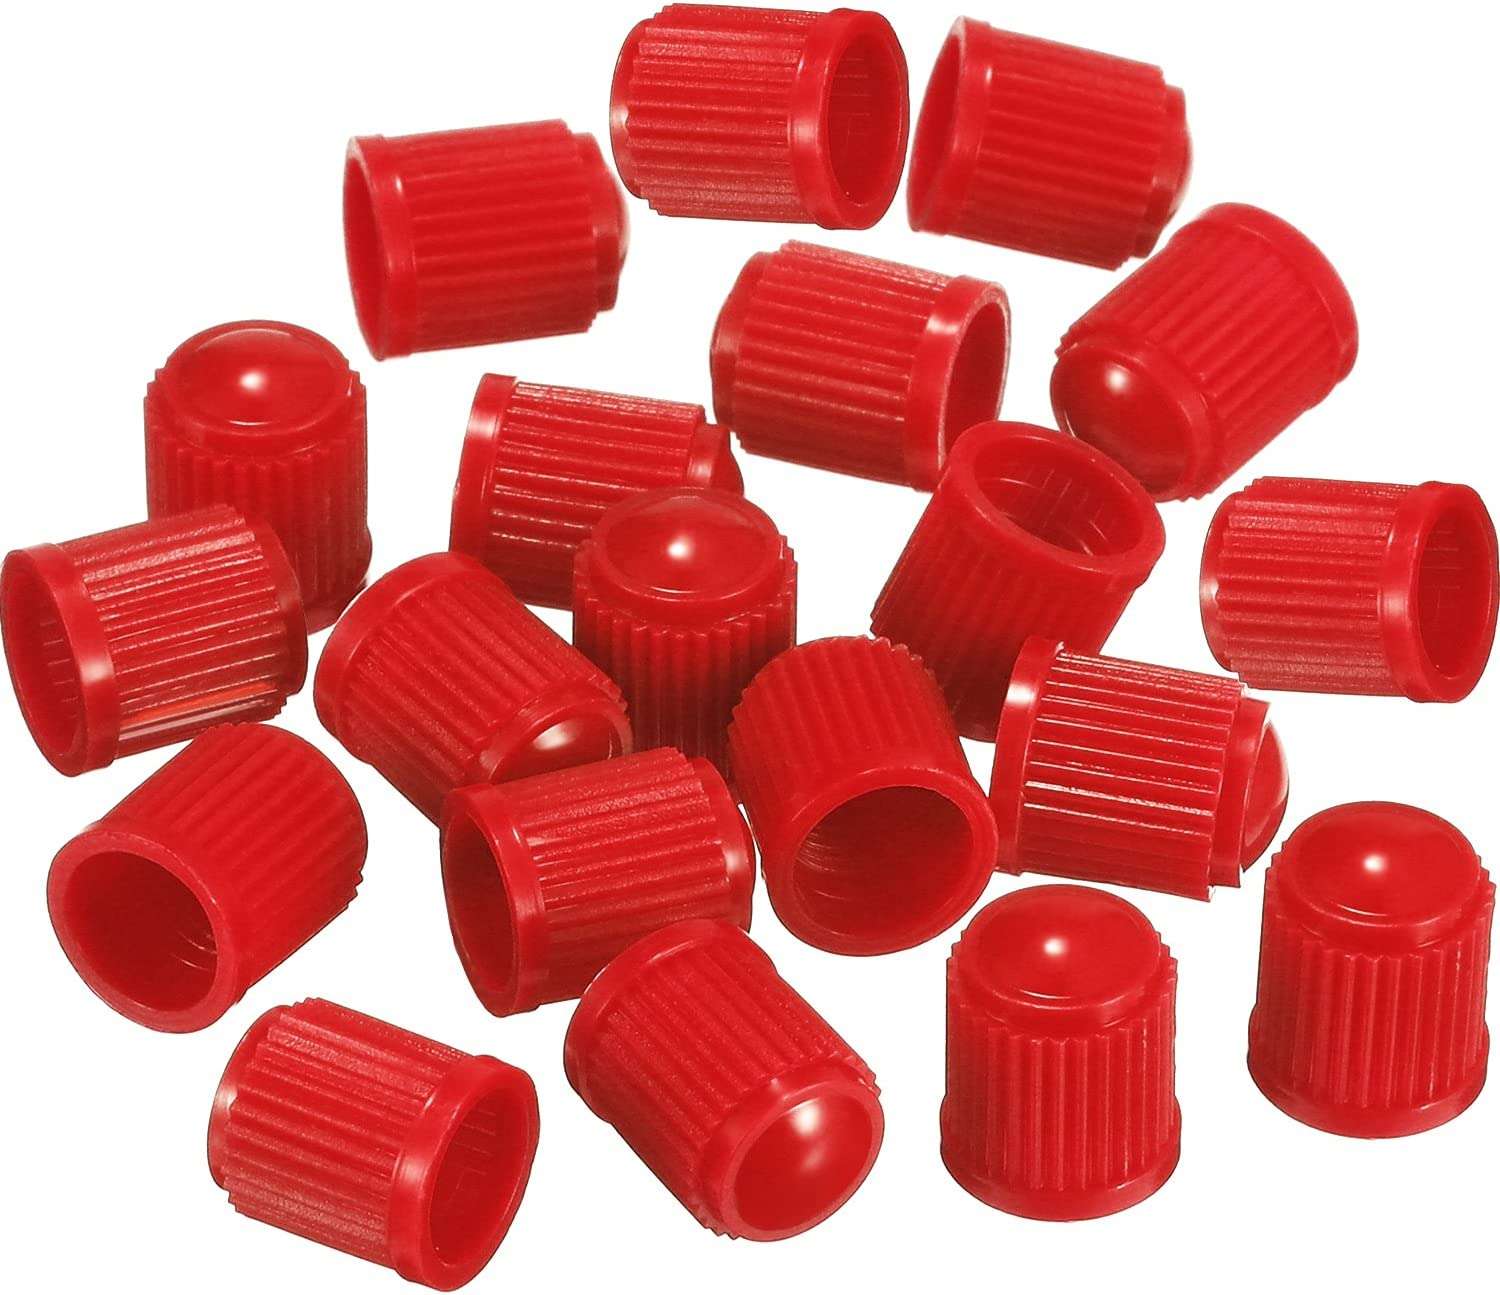 Outus 20 Pack Tyre Valve Dust Caps for Car, Motorbike, Trucks, Bike, Bicycle (Red)